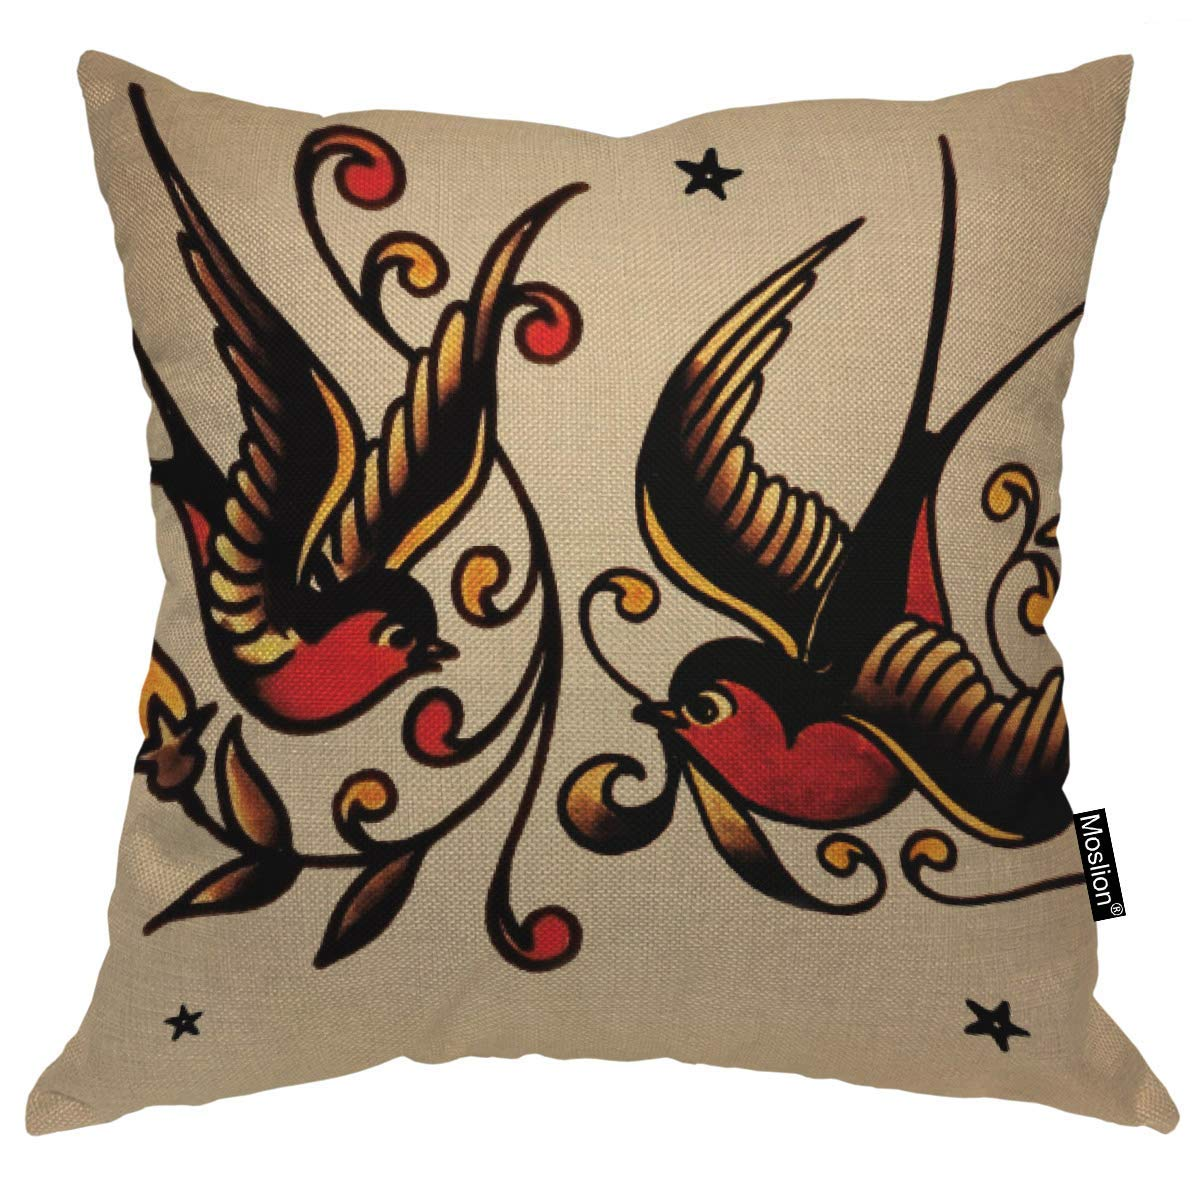 odin sky Throw Pillow Cover Swallow Cool Little Star Patrón Floral ...